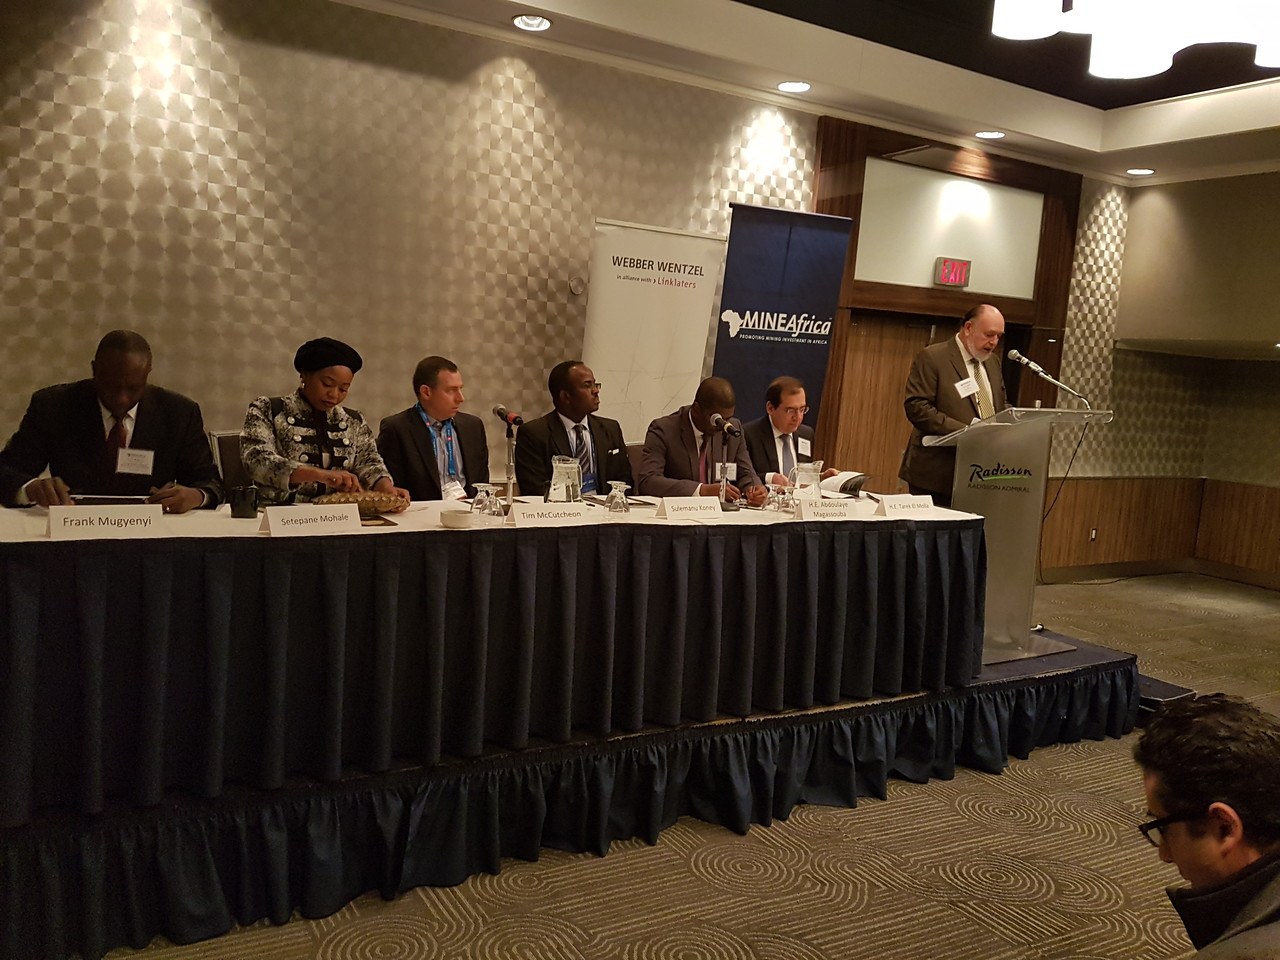 African Ministers and industry leaders in an open dialogue on current issues in African mining